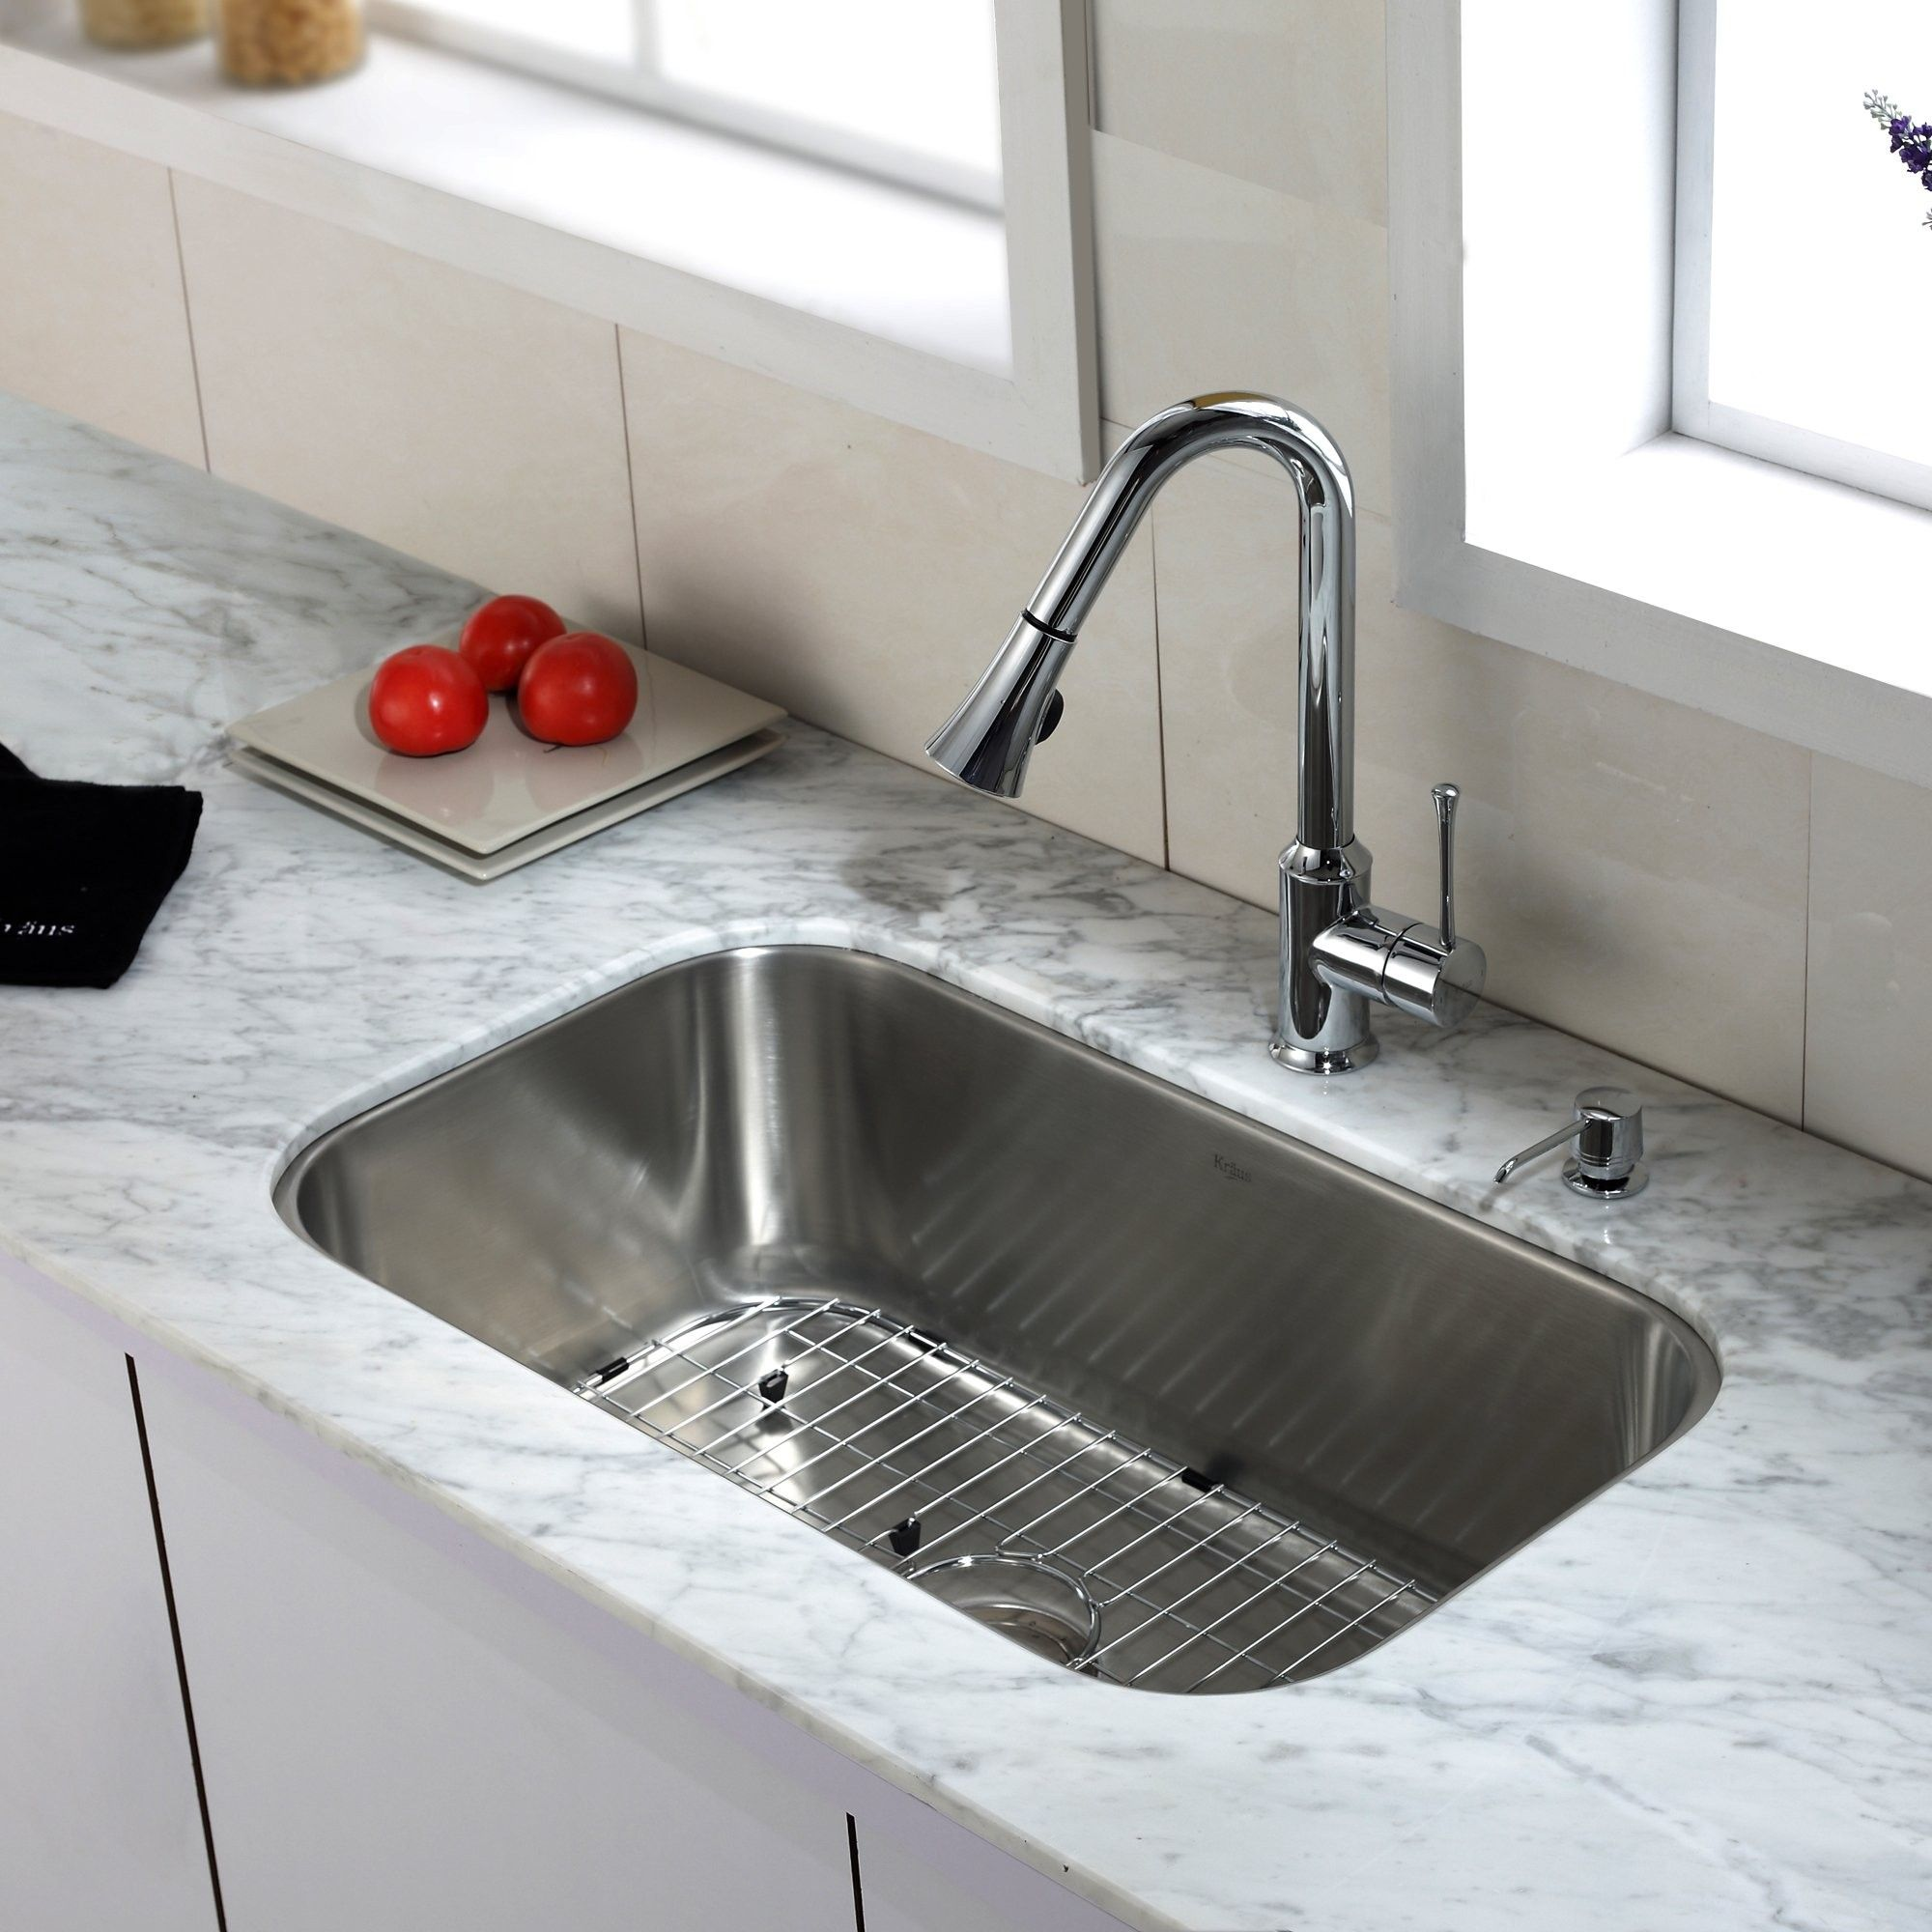 Image Result For Kohler Single Basin Under Counter Mount Stainless Sink Don T Like That Not Flush Can See Edge Of